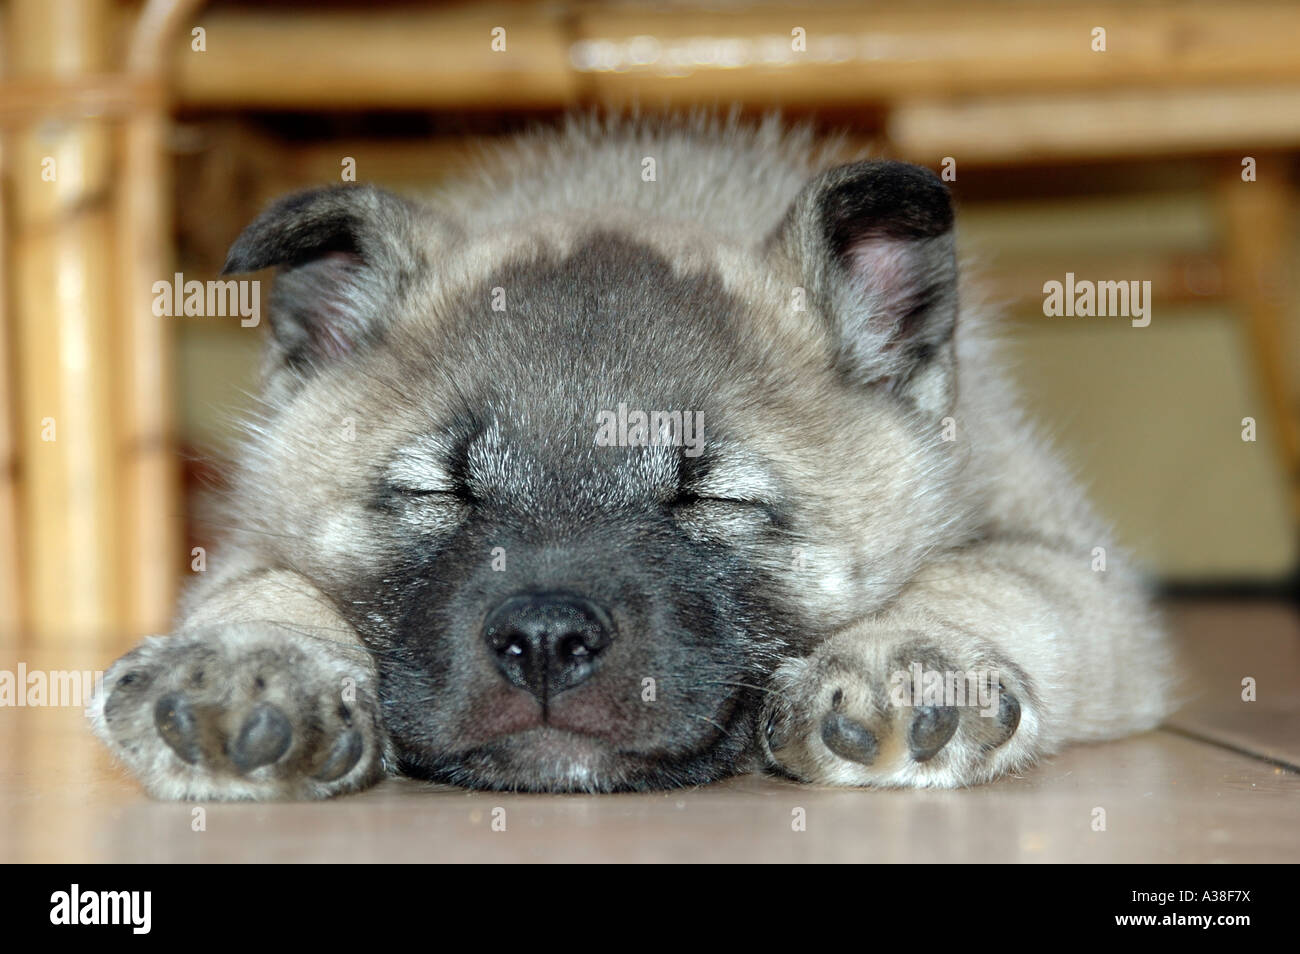 norwegian elkhound puppy sleeping stock photo 10705165 alamy